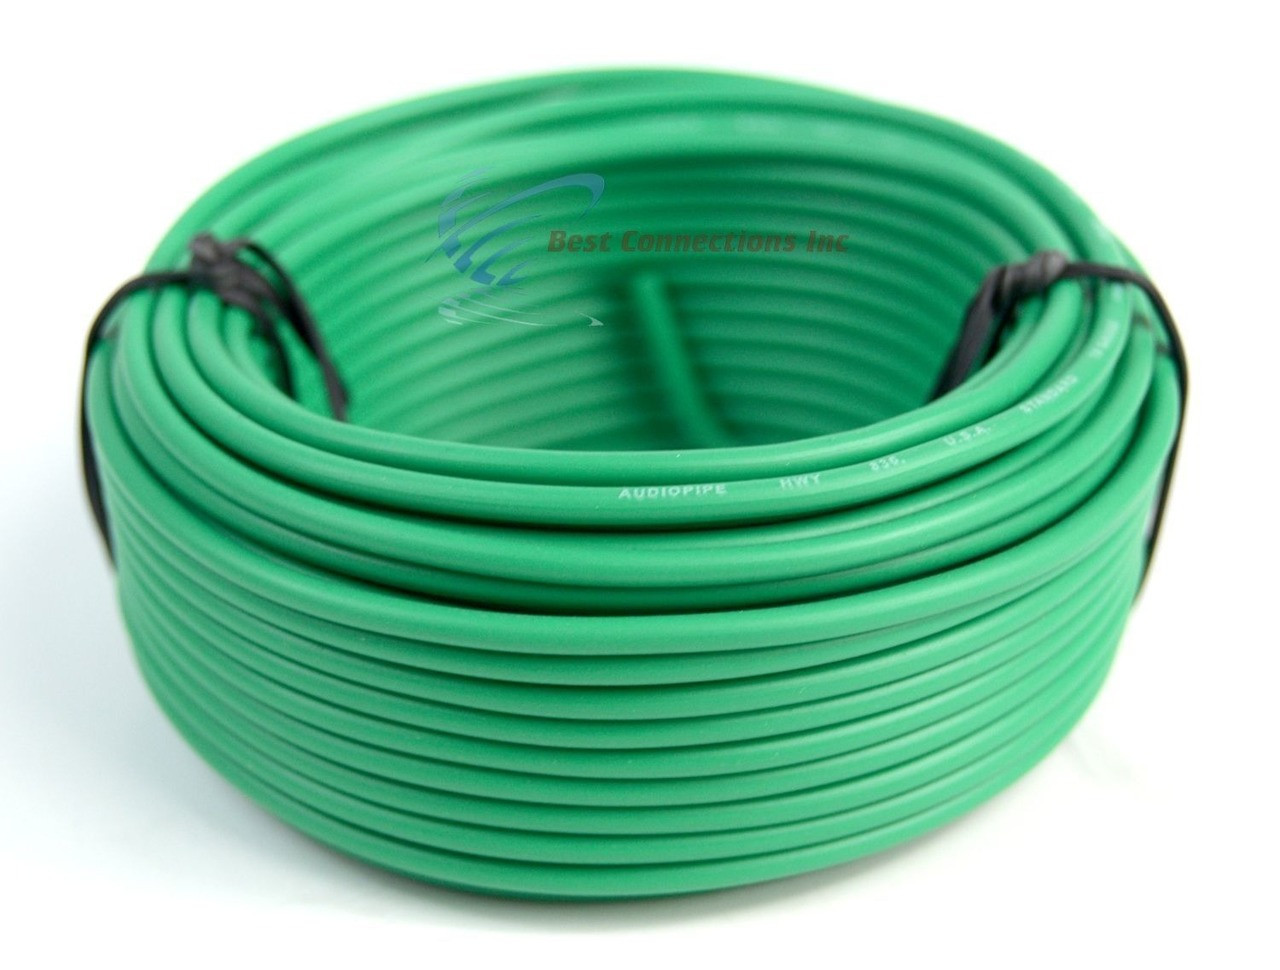 Audiopipe 500/' Feet 12 Gauge Green Primary Remote Wire Car Power Cable Home